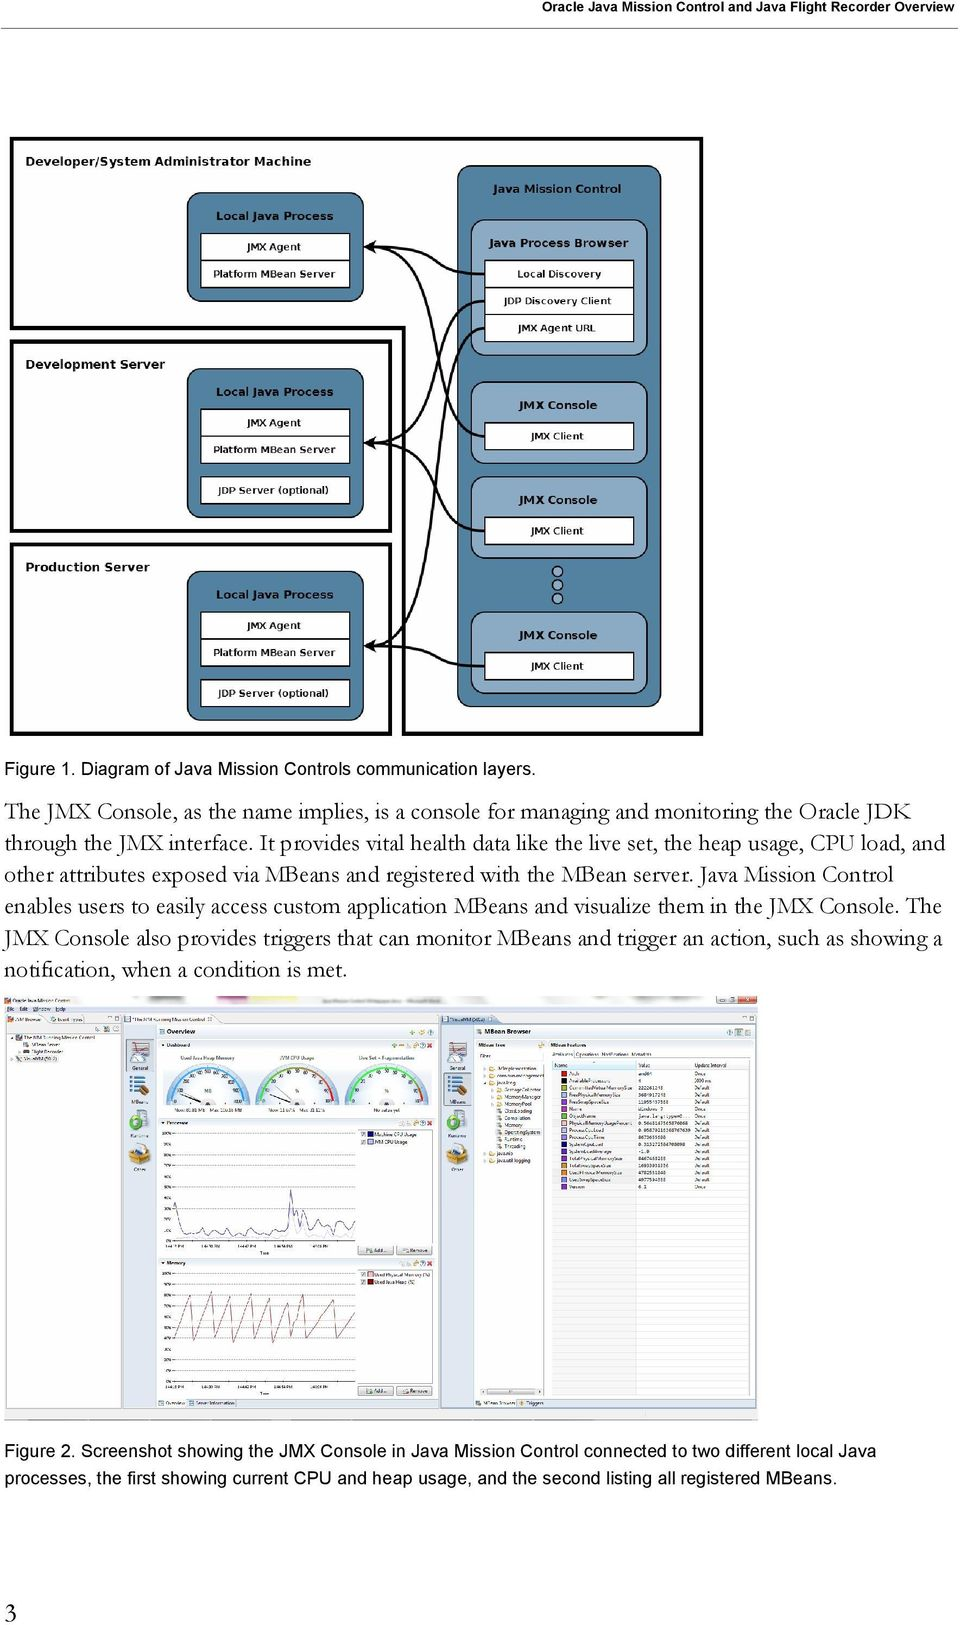 Java Mission Control enables users to easily access custom application MBeans and visualize them in the JMX Console.